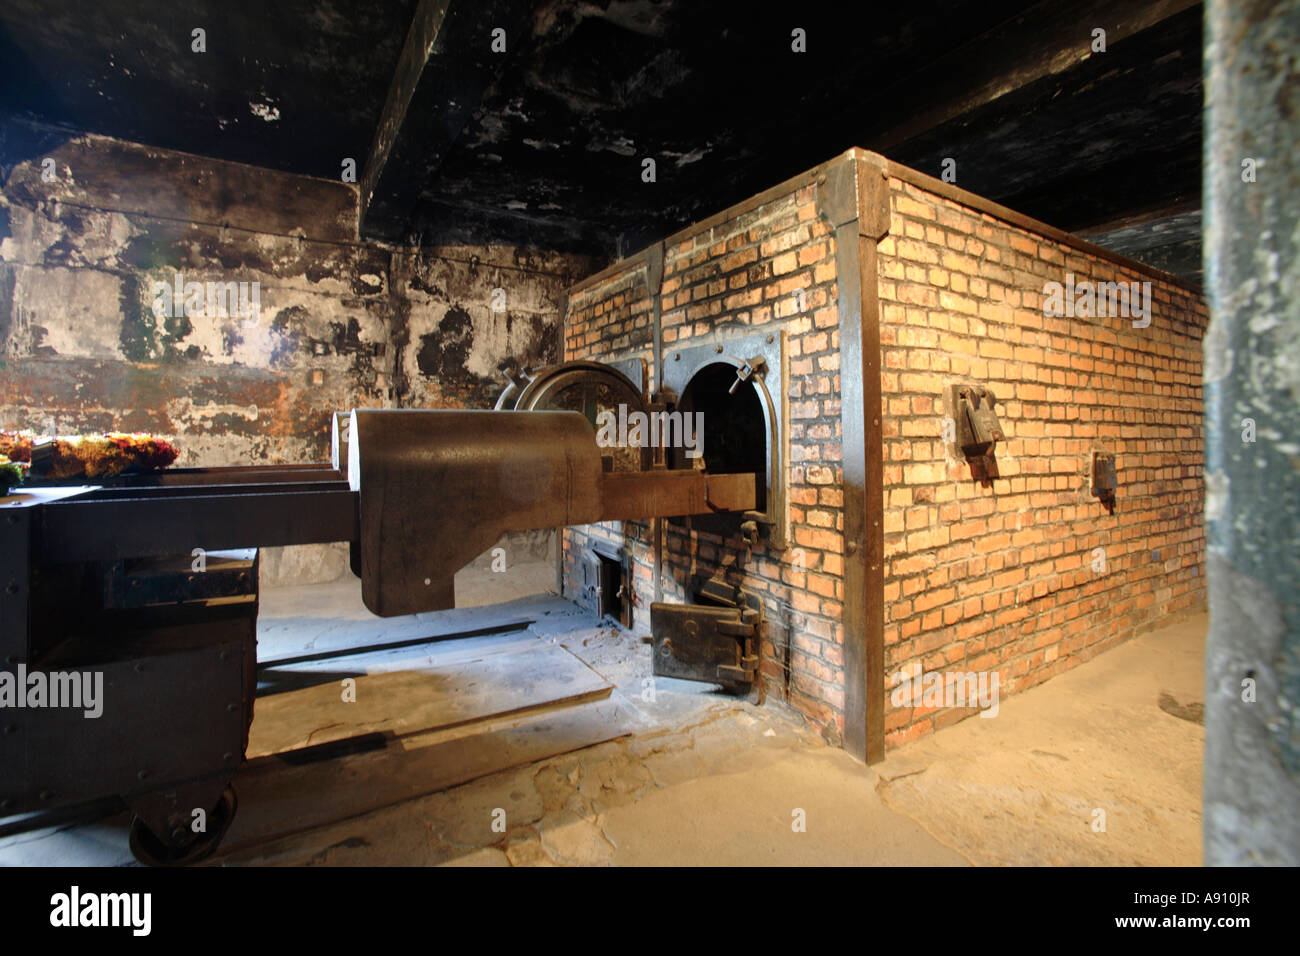 The cremation oven in Auschwitz nazi  concentration camp,  Poland - Stock Image